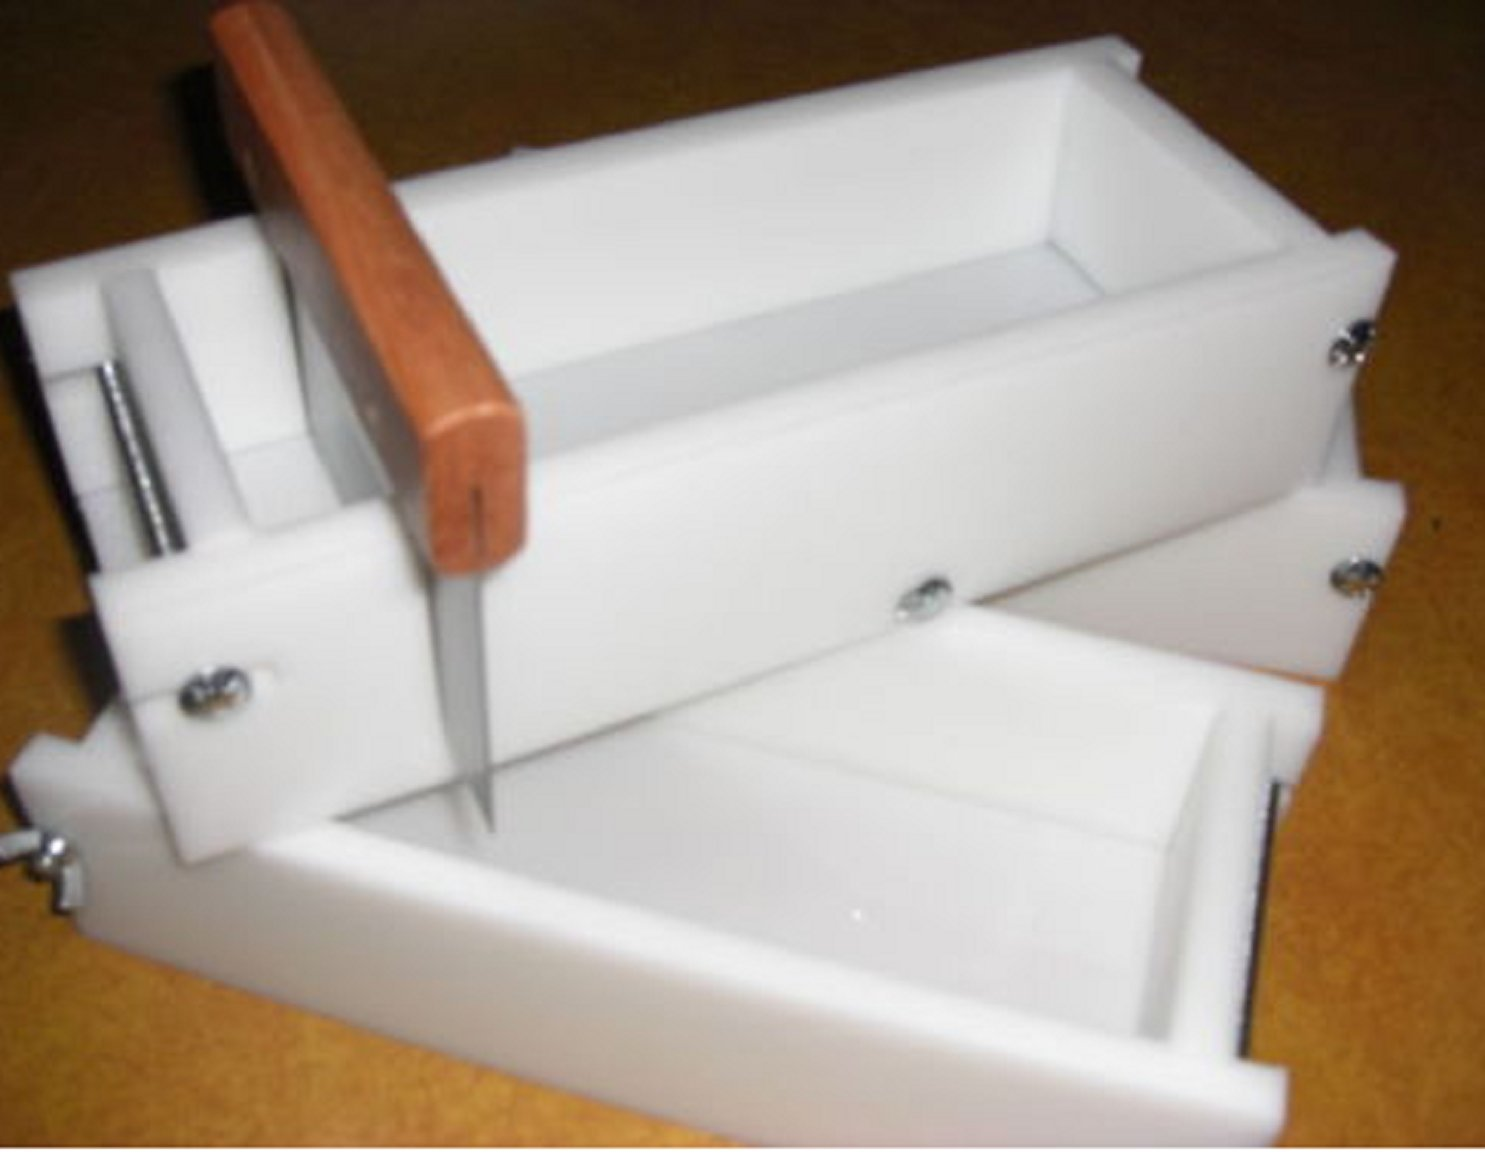 USA Premium Store HDPE 2-3 Loaf Soap Bar Cutter & No Liner Molds Wood Wooden Lids Aval.